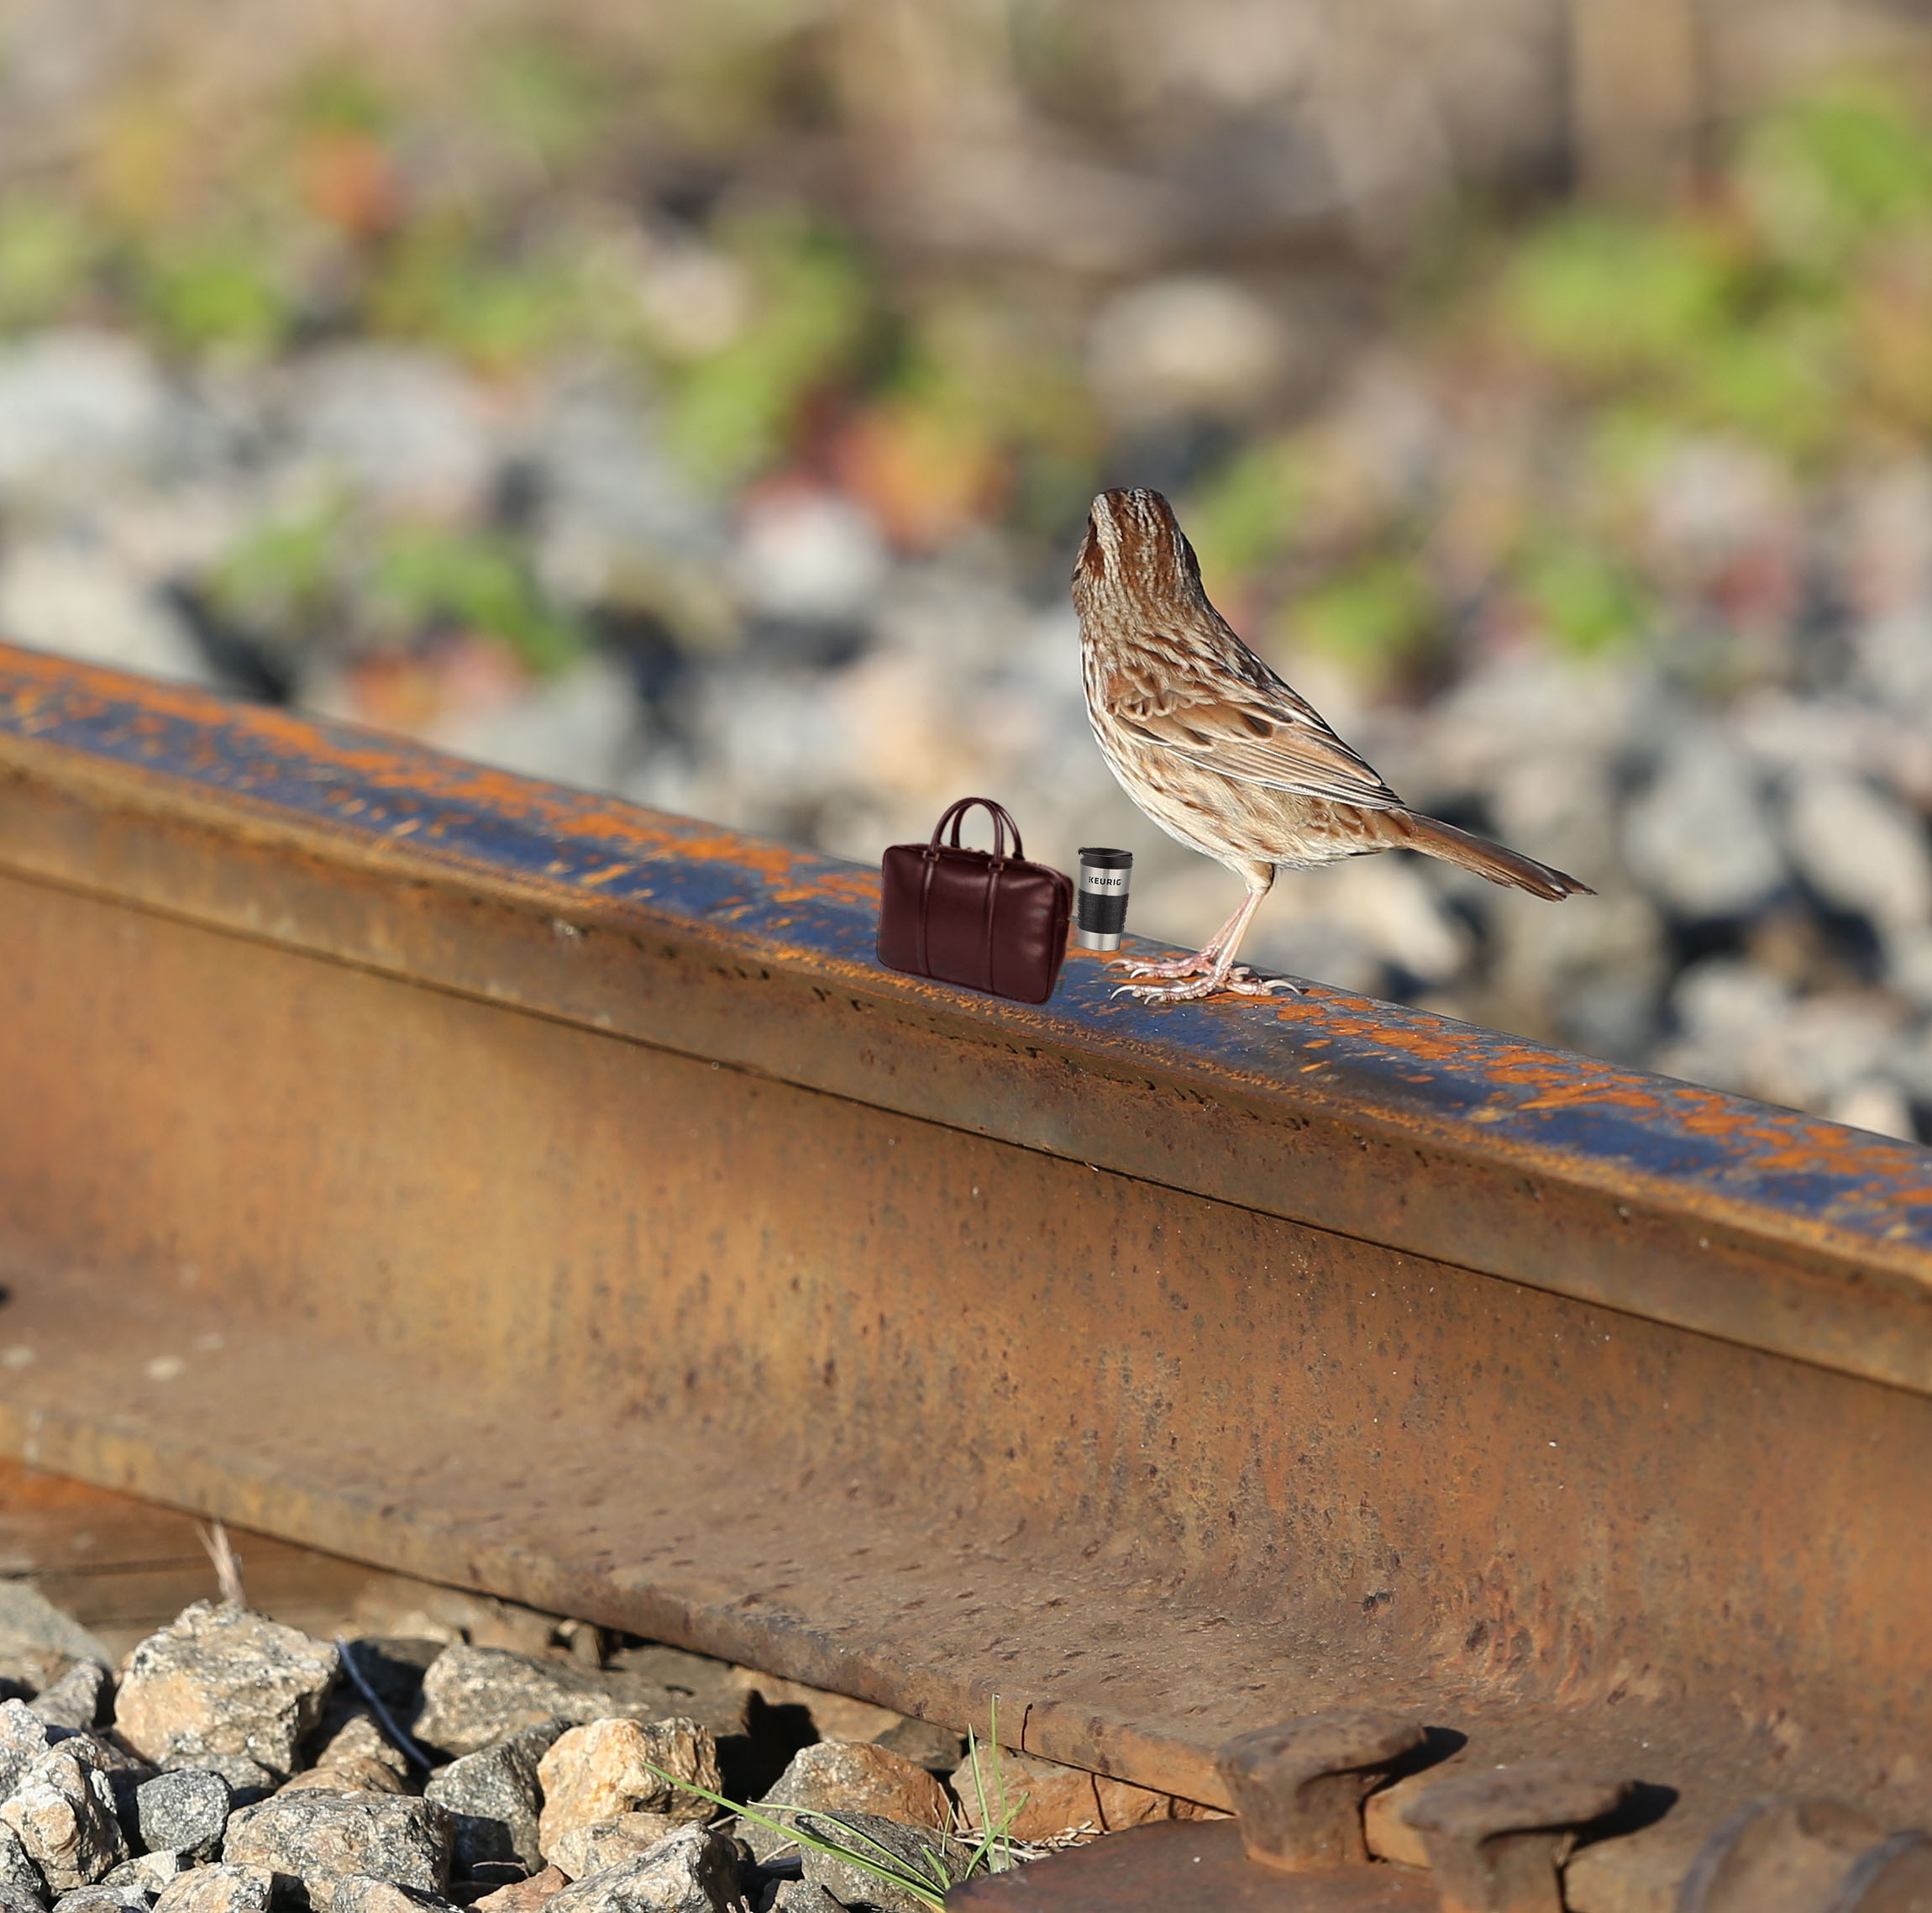 Song sparrow on a railroad track